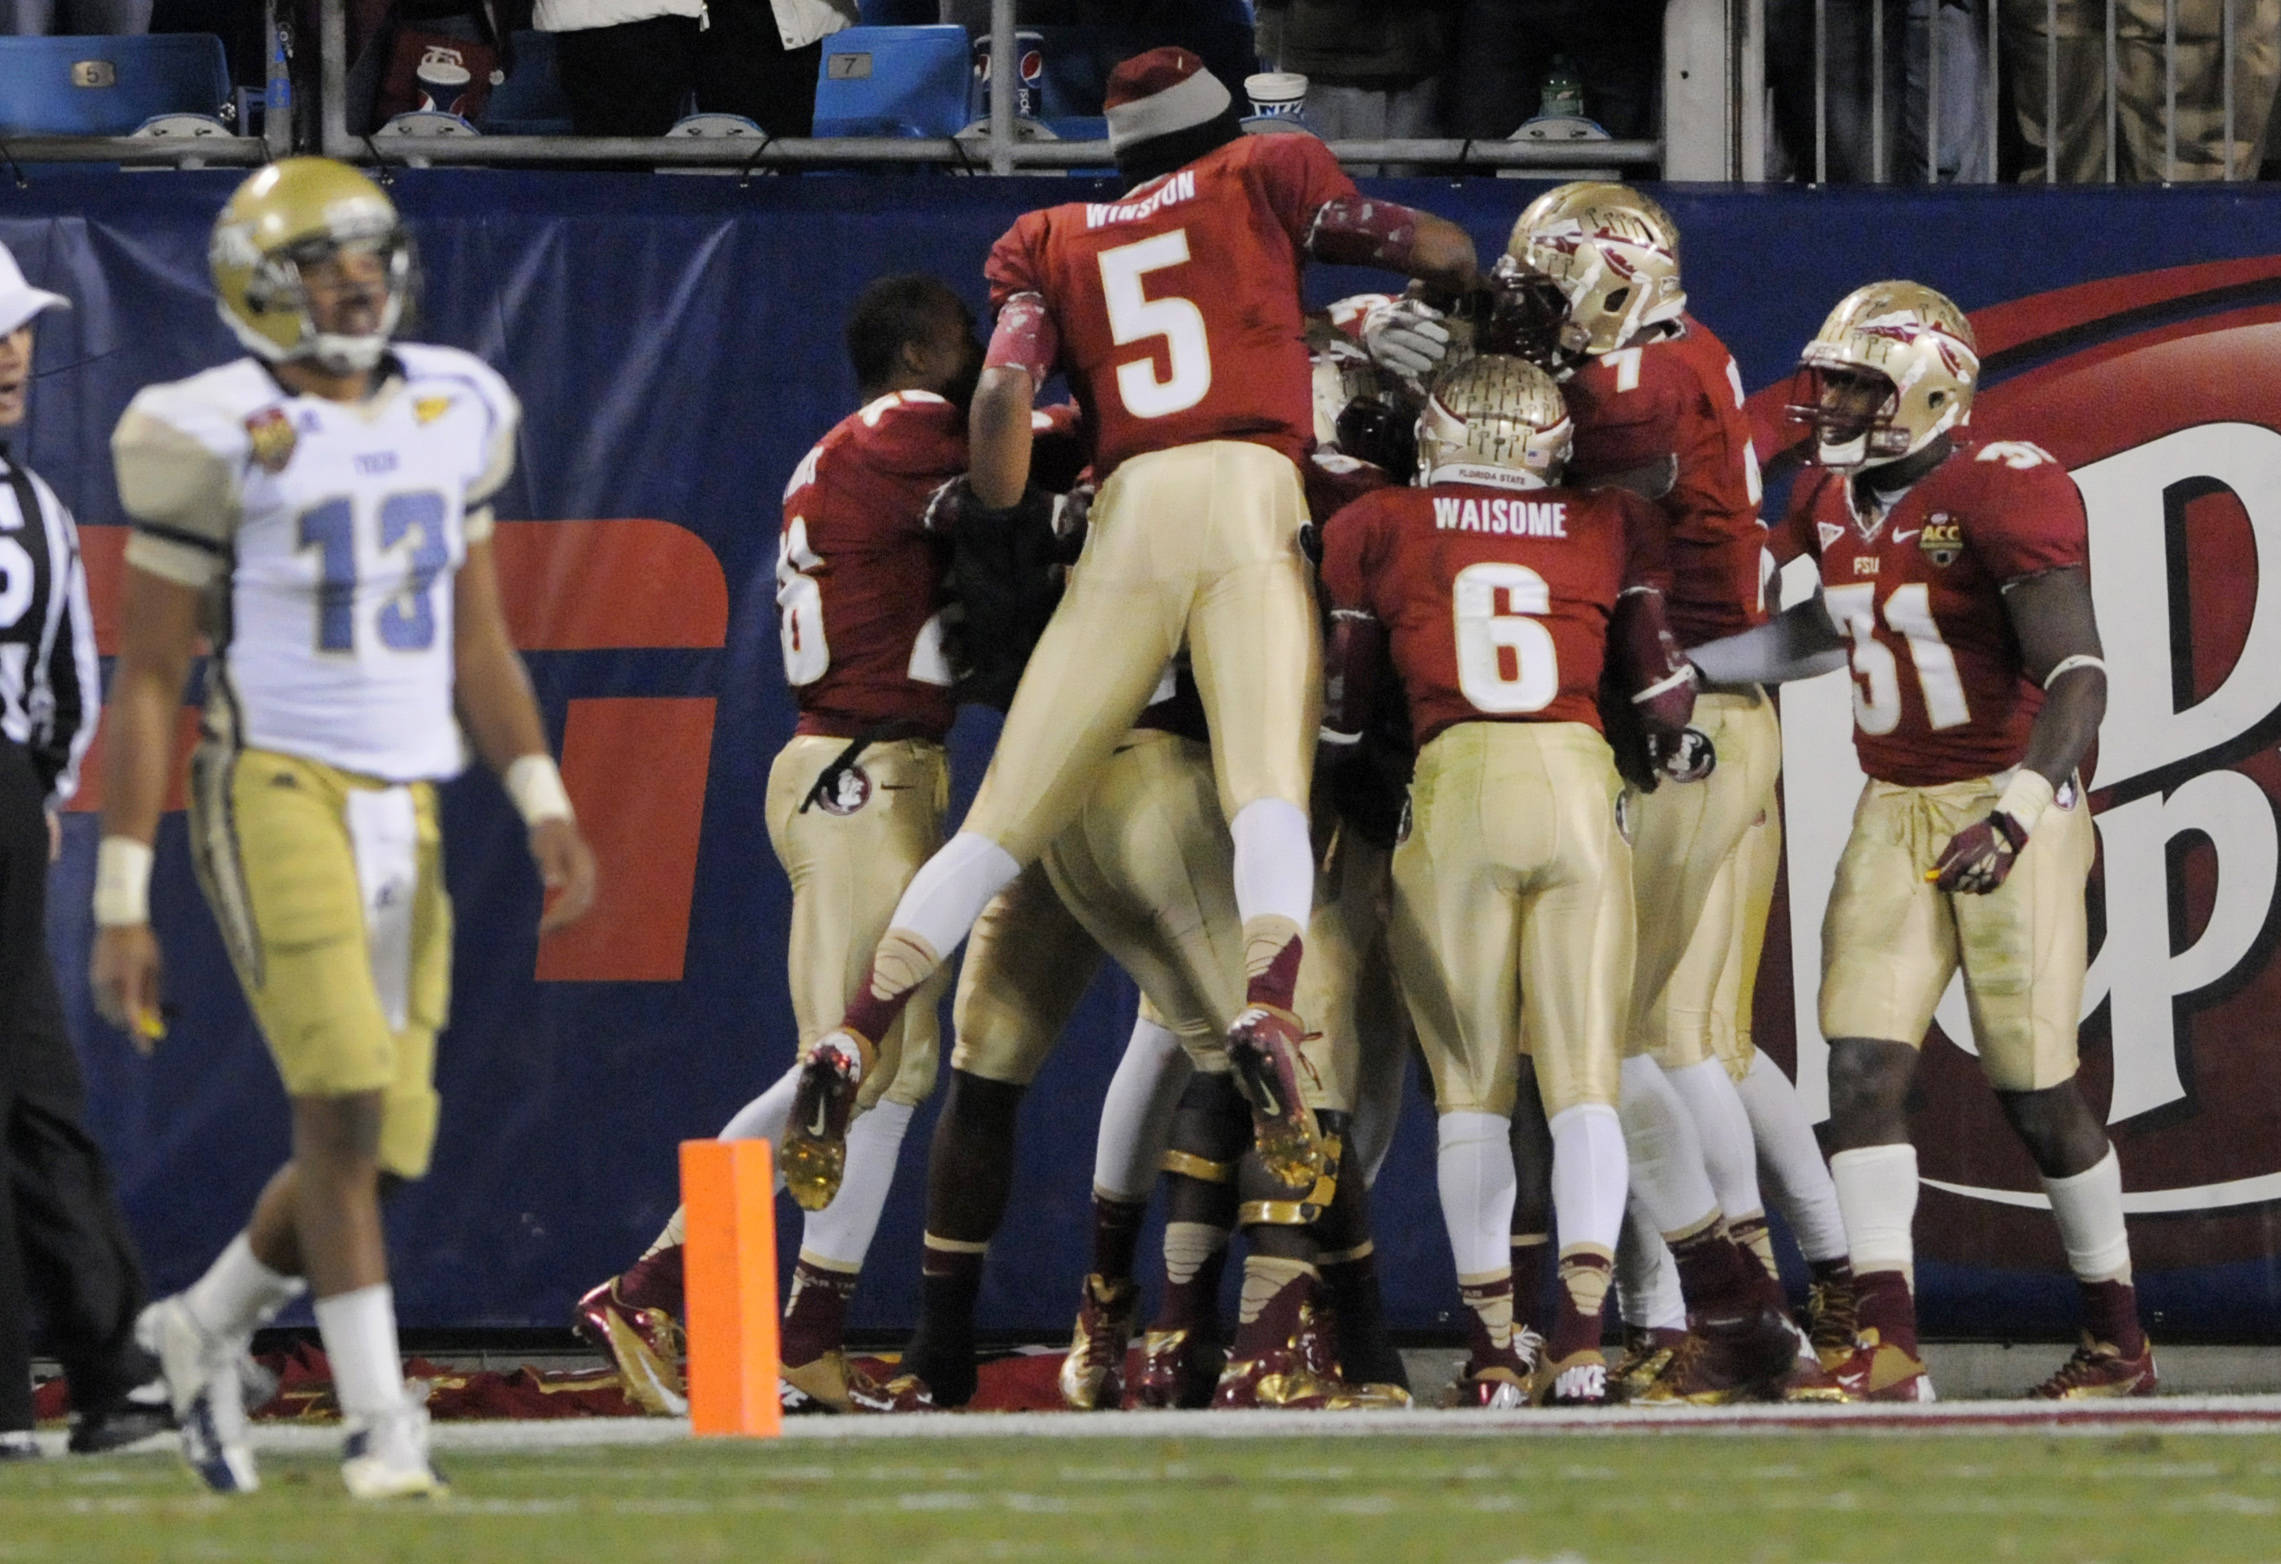 Georgia Tech's Tevin Washington (13) walks off the field as Florida State players celebrate an interception during the second half of the Atlantic Coast Conference championship NCAA college football game in Charlotte, N.C., Sunday, Dec. 2, 2012. Florida State won 21-15. (AP Photo/Mike McCarn)